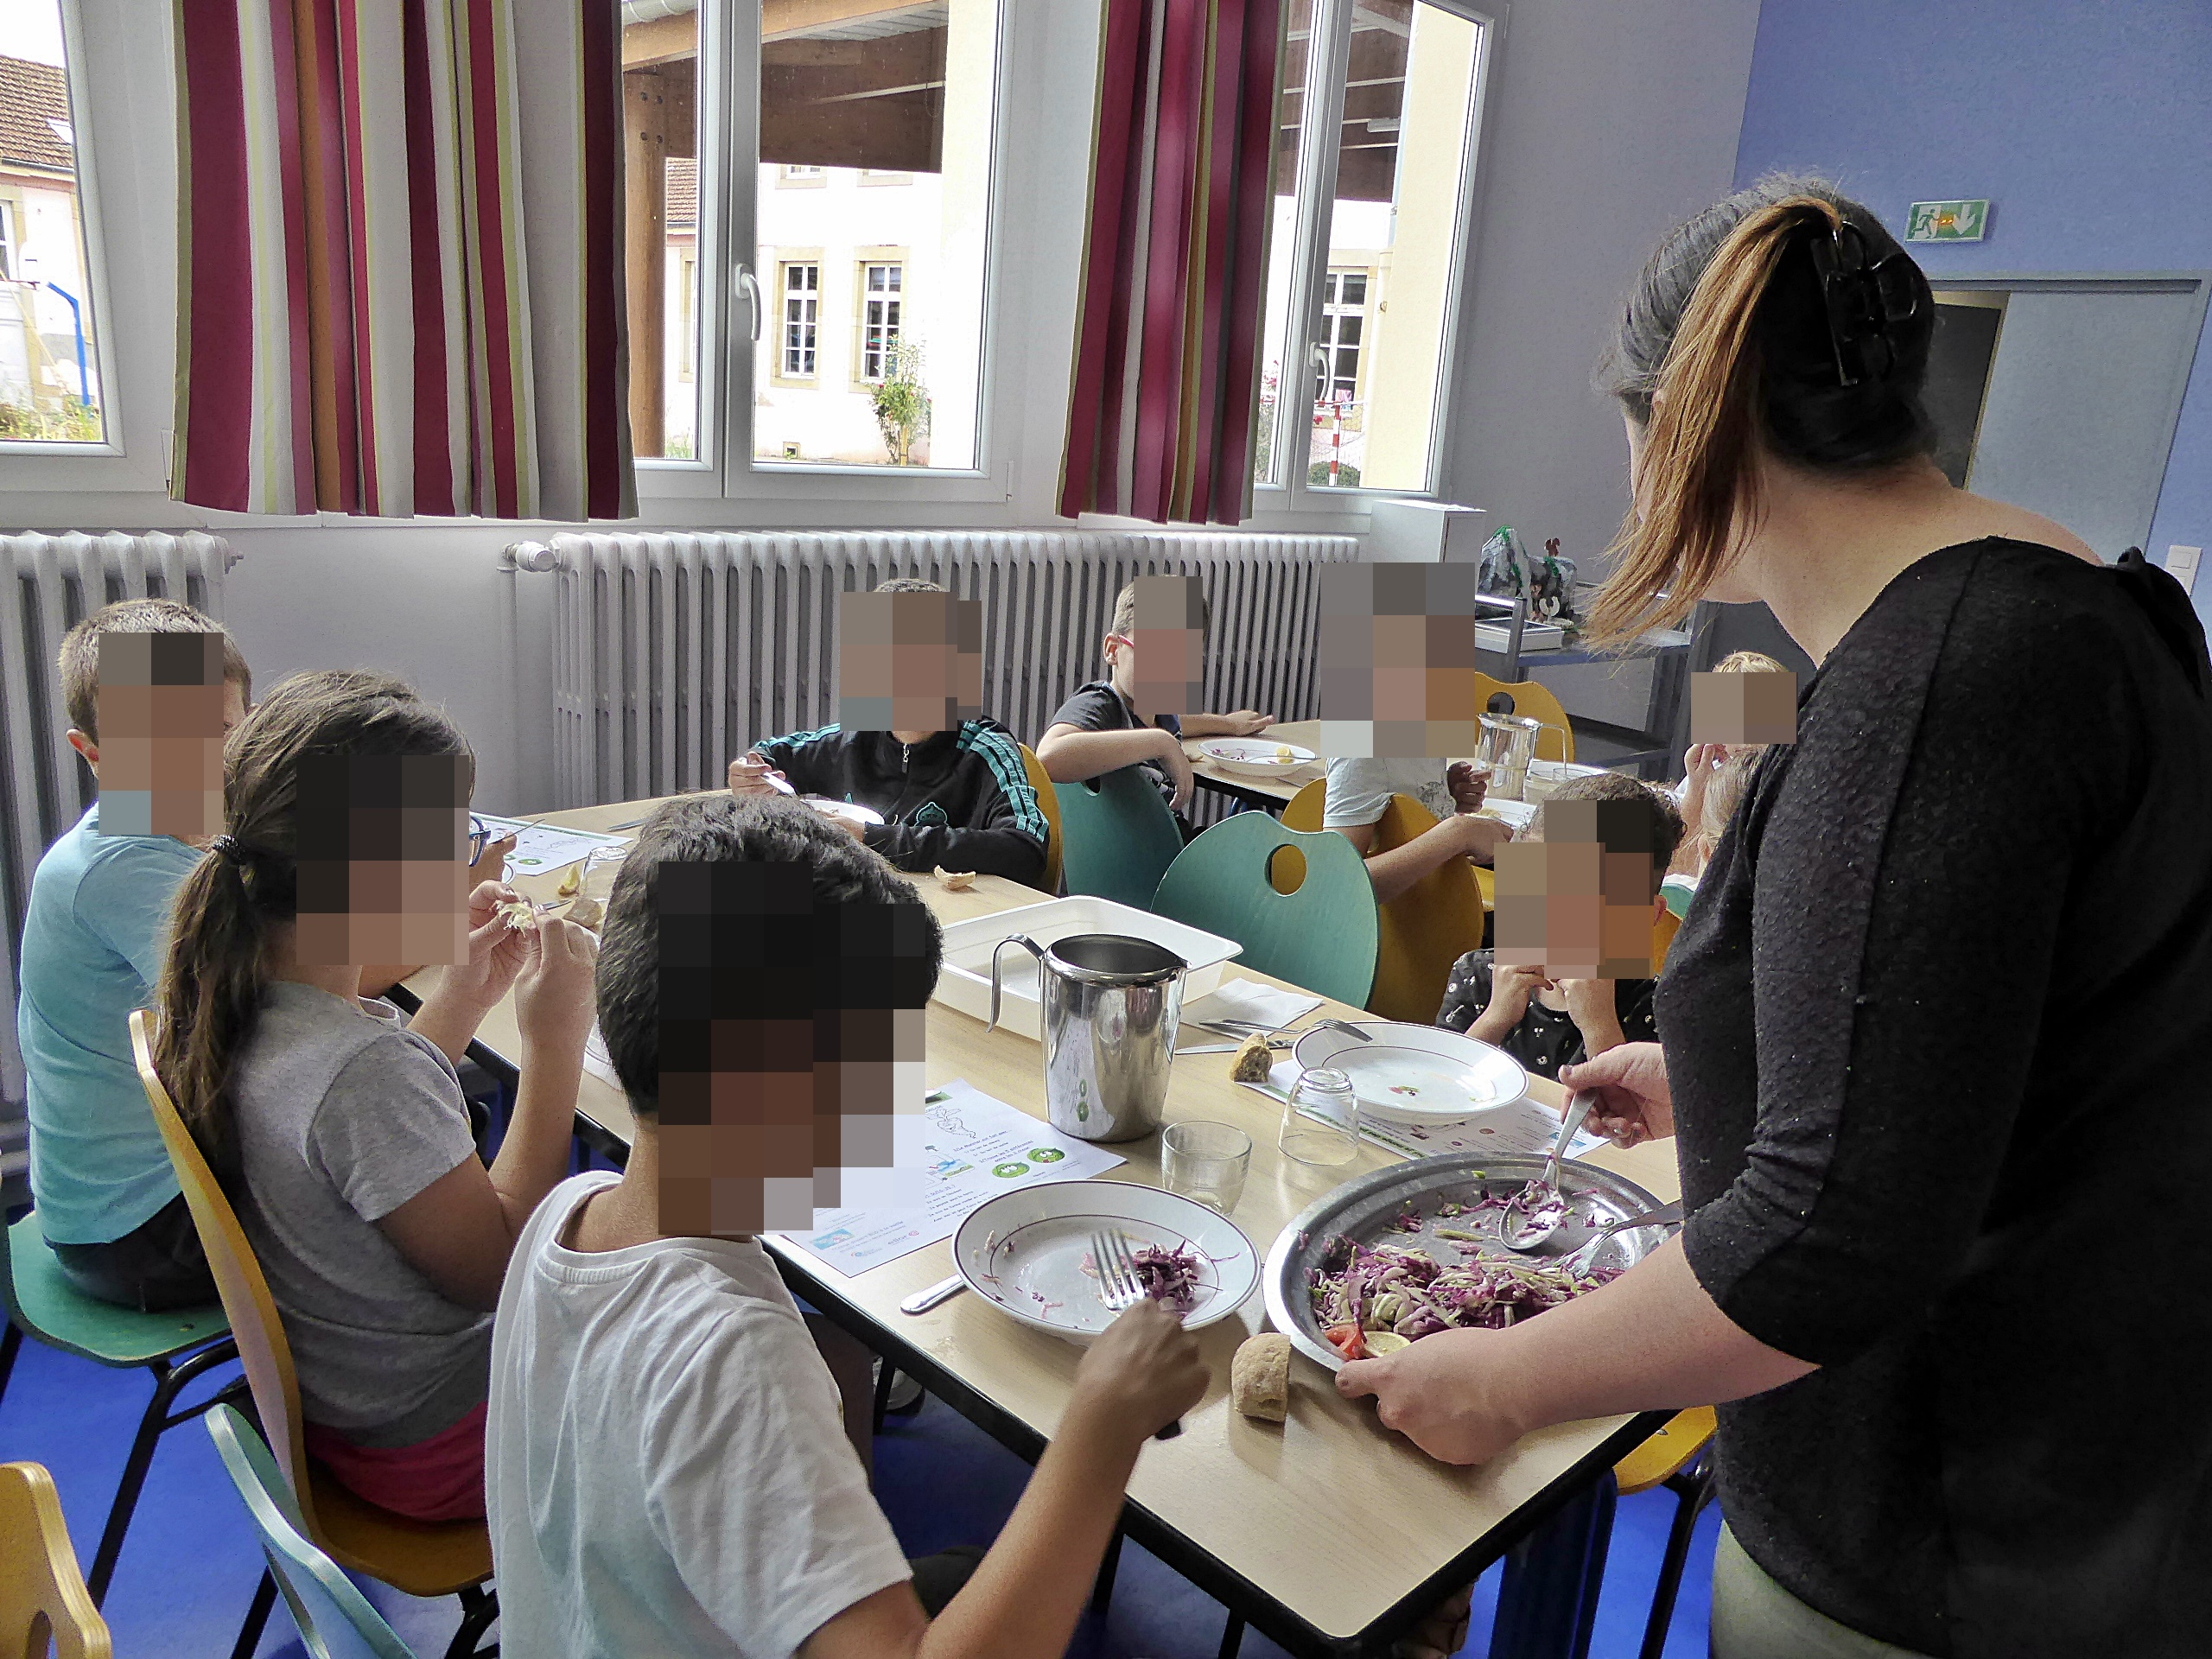 cantines-scolaires-epinal (15)